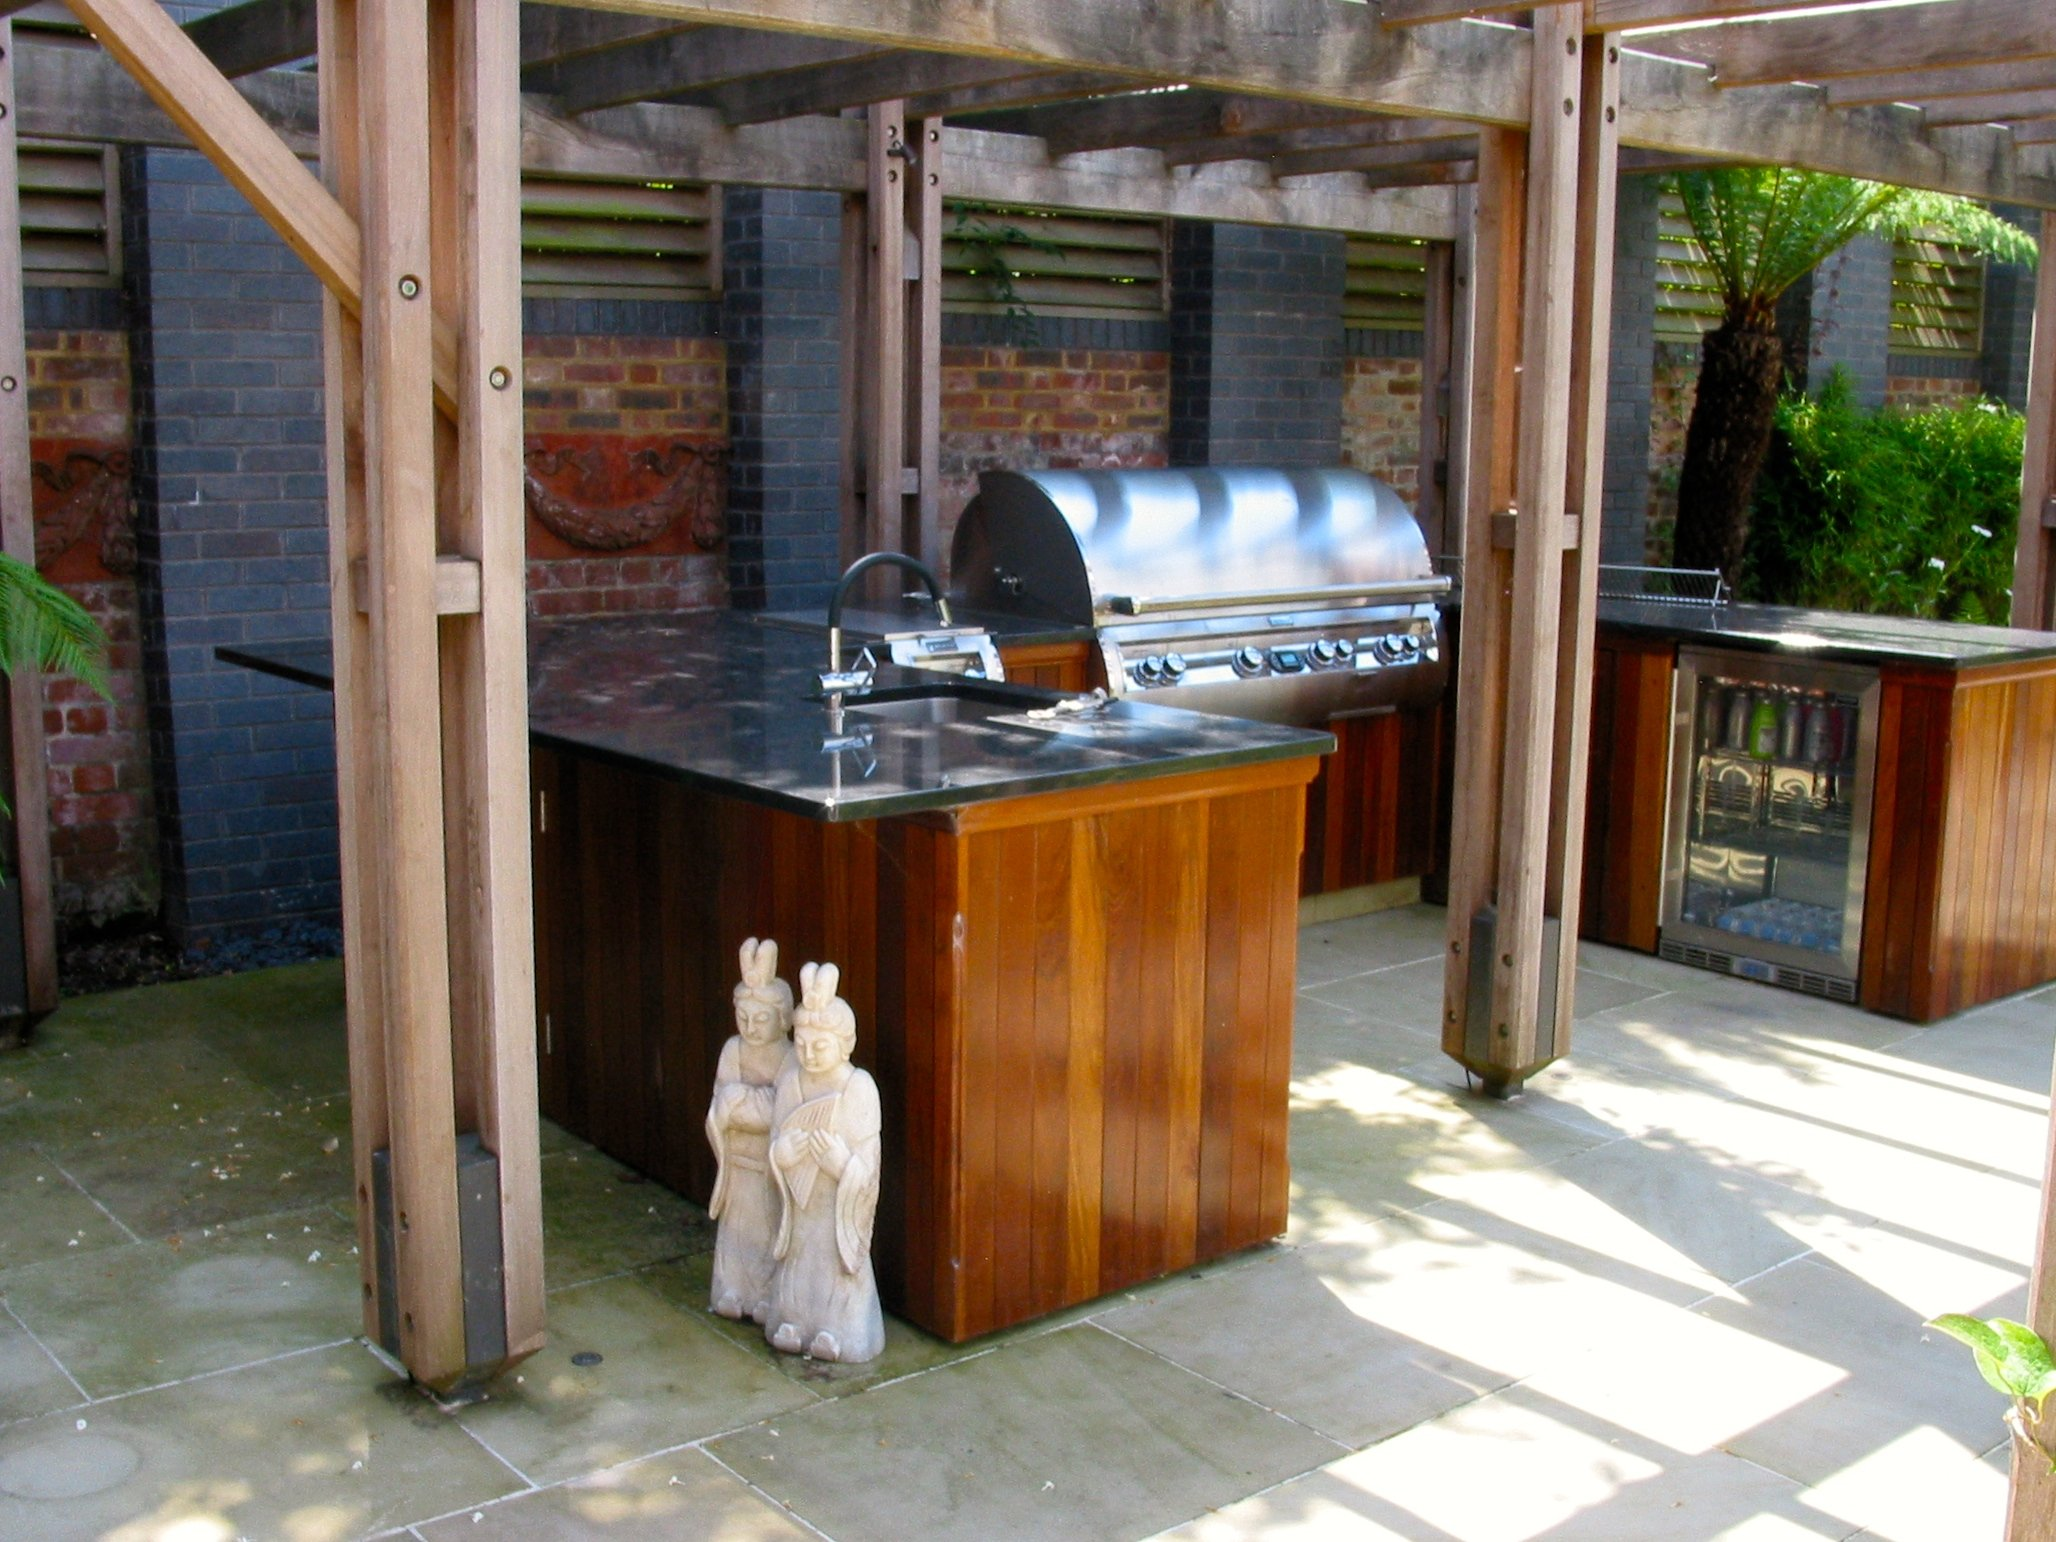 Outdoor kitchen Wimbledon, Home park road, Wimbledon,London